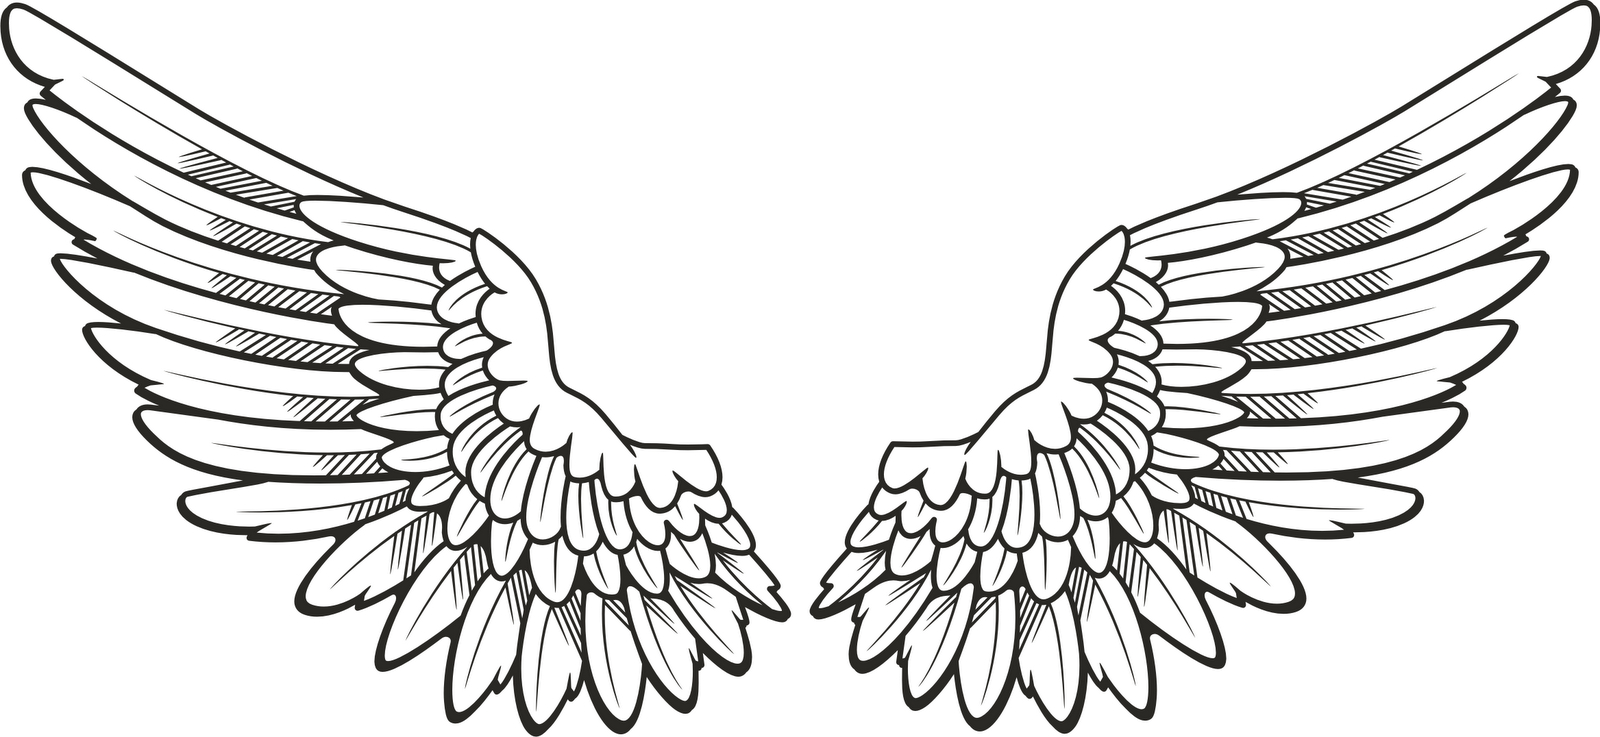 1600x737 Easy To Draw Angel Wings Drawn Broken Heart Pon